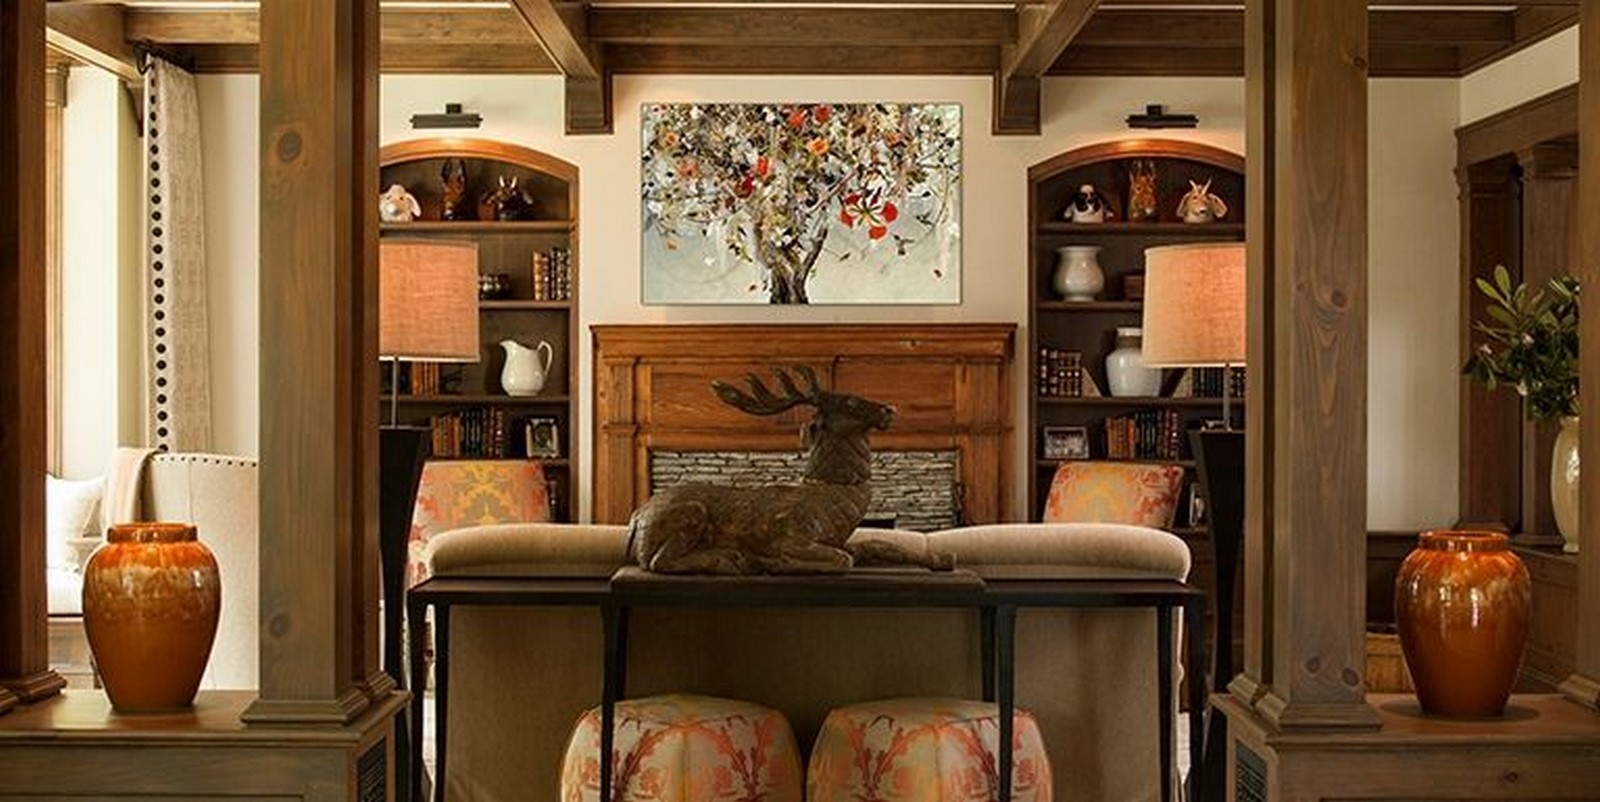 30 Examples of Rustic interiors for living rooms - Sheet25